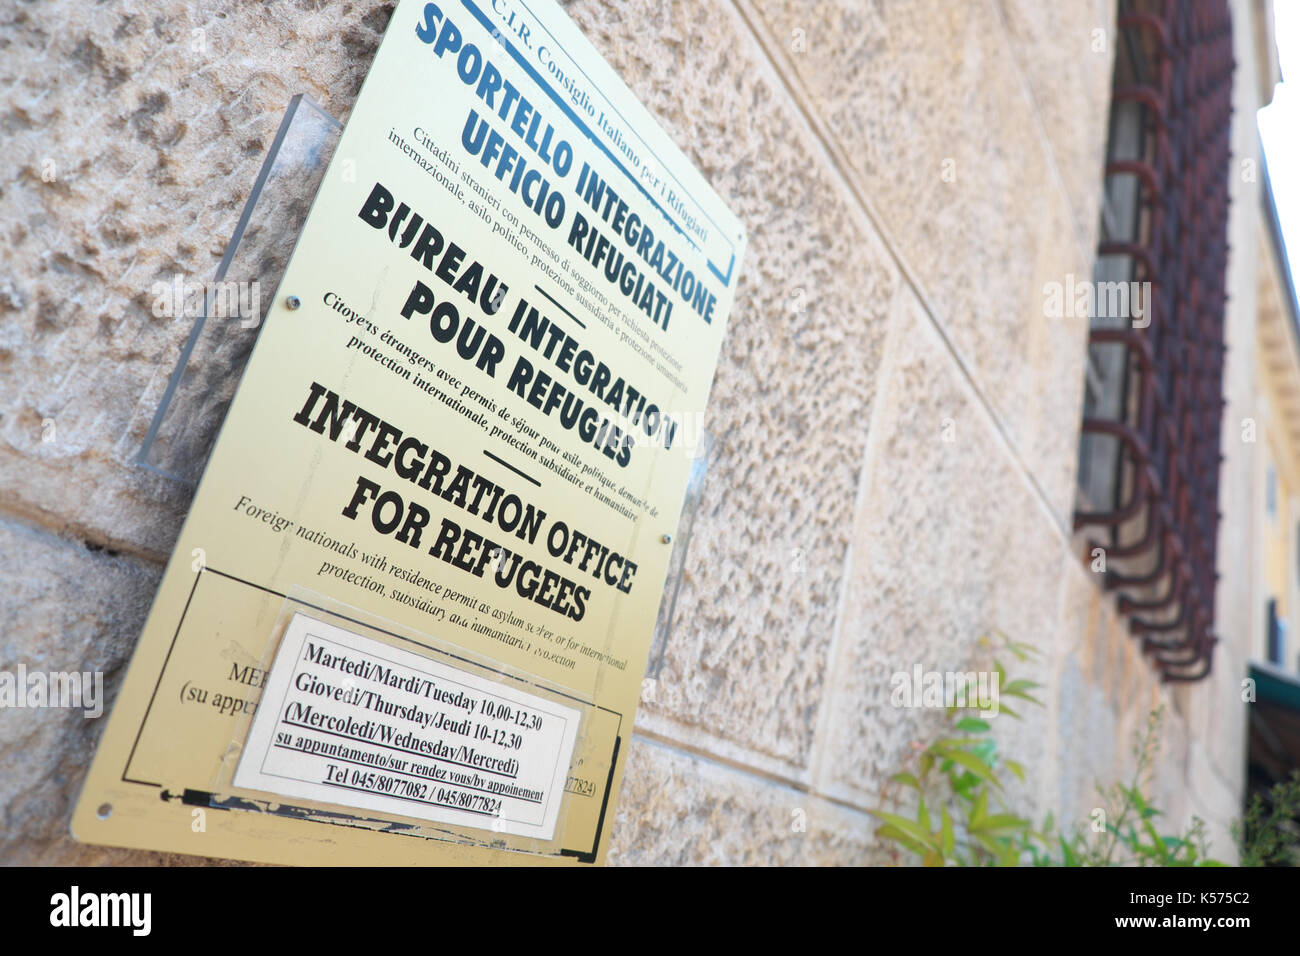 Italy Integration Office for Refugees and migrants in Verona Italy - Stock Image